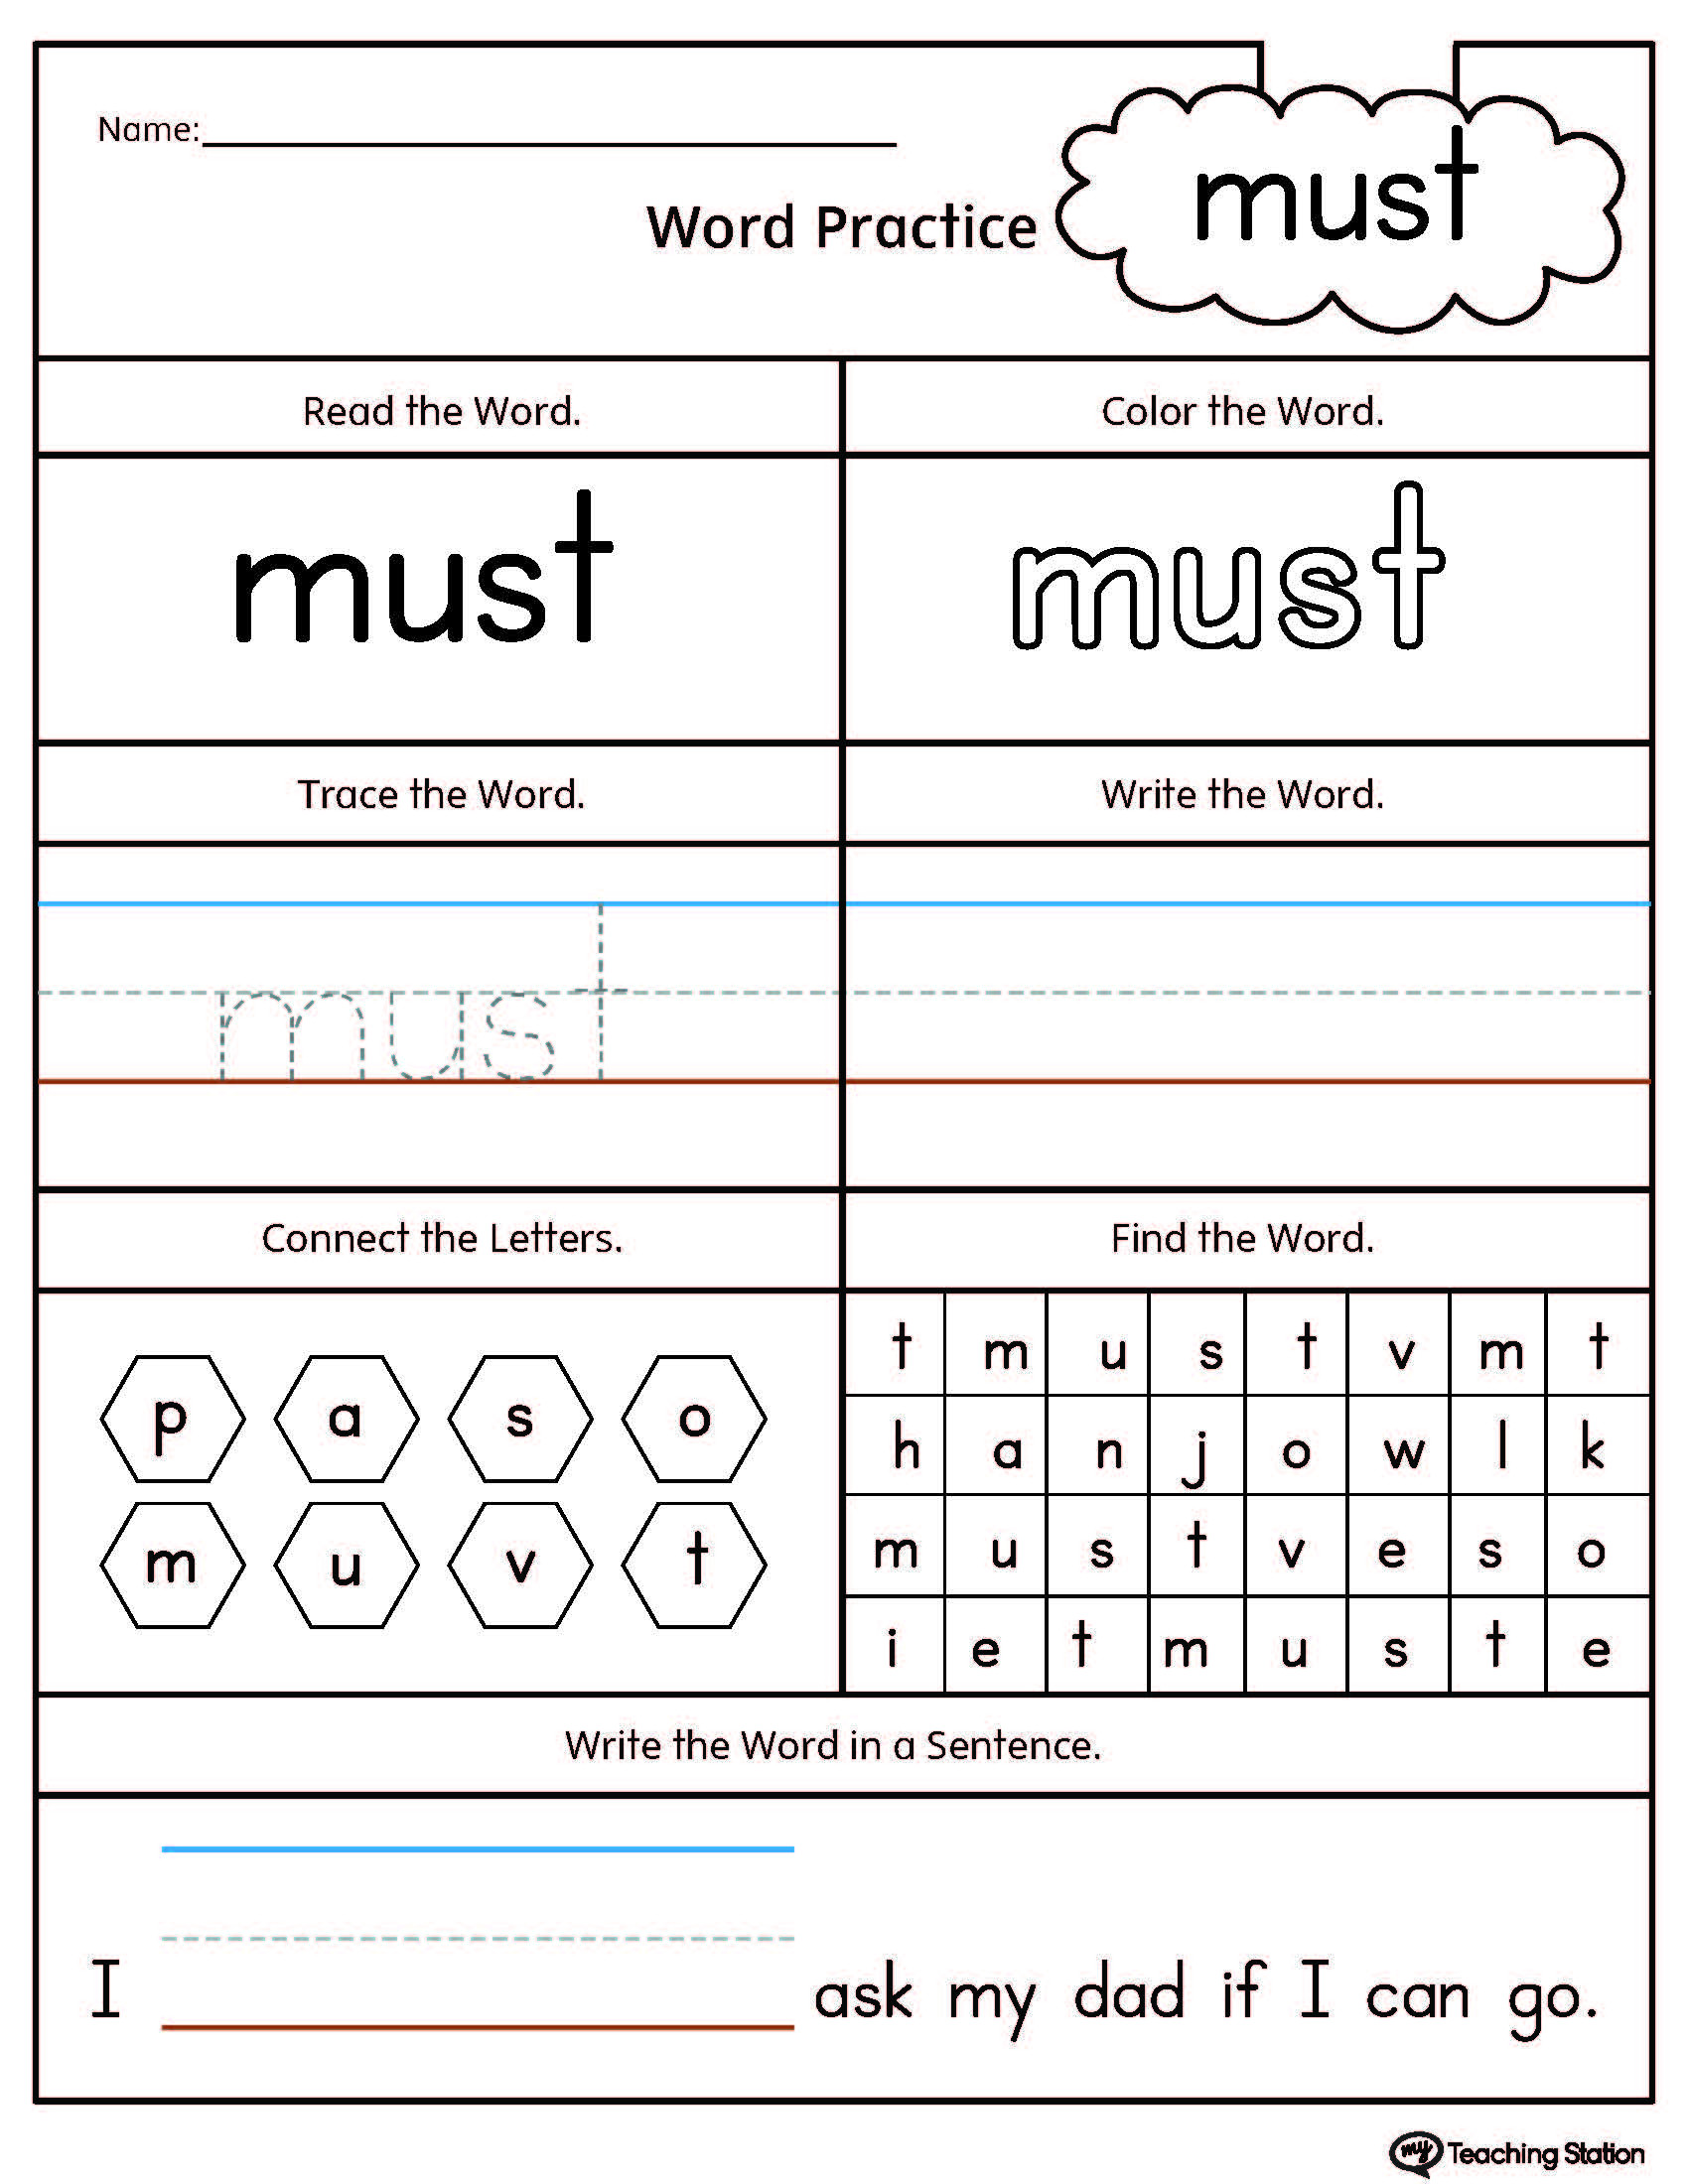 Frequency Table Worksheets 3rd Grade Coloring Book Remarkable Sight Word Coloring Pages Pdf